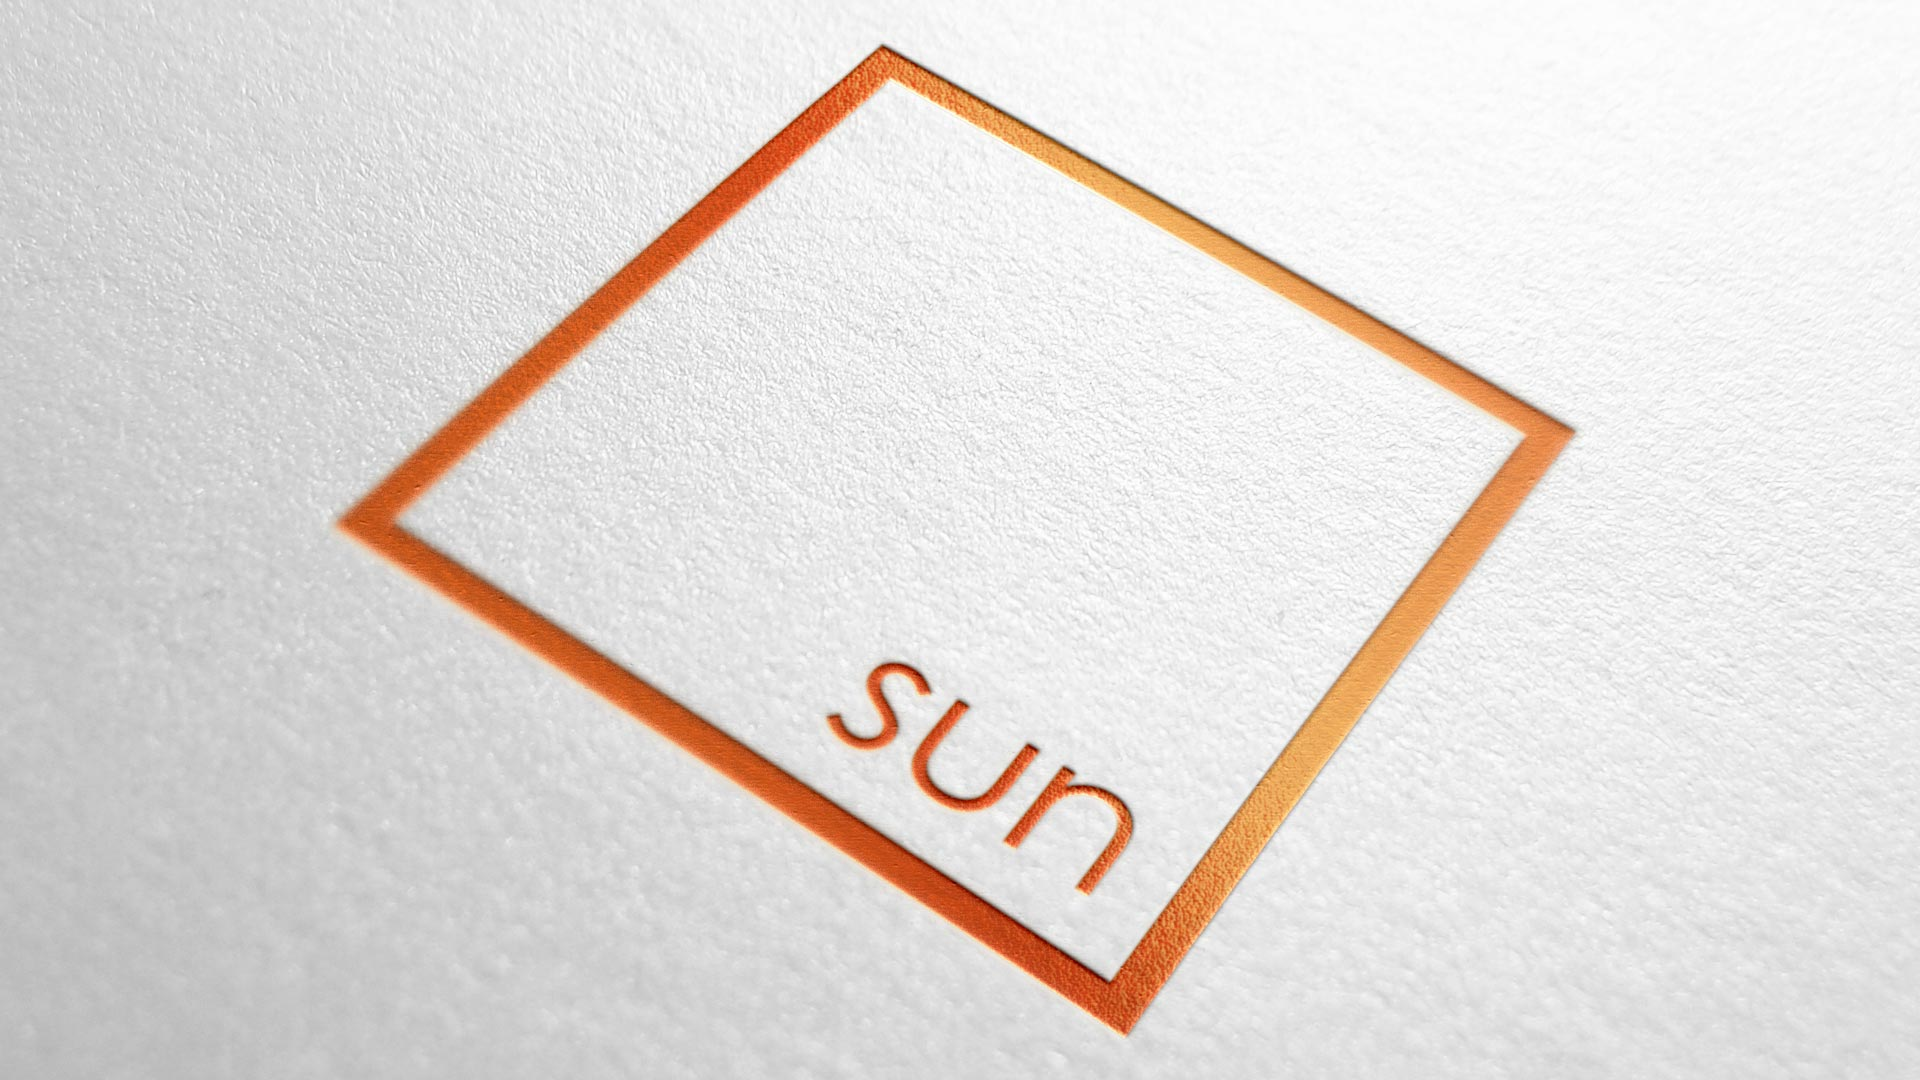 Sunsquare logo mock up print design